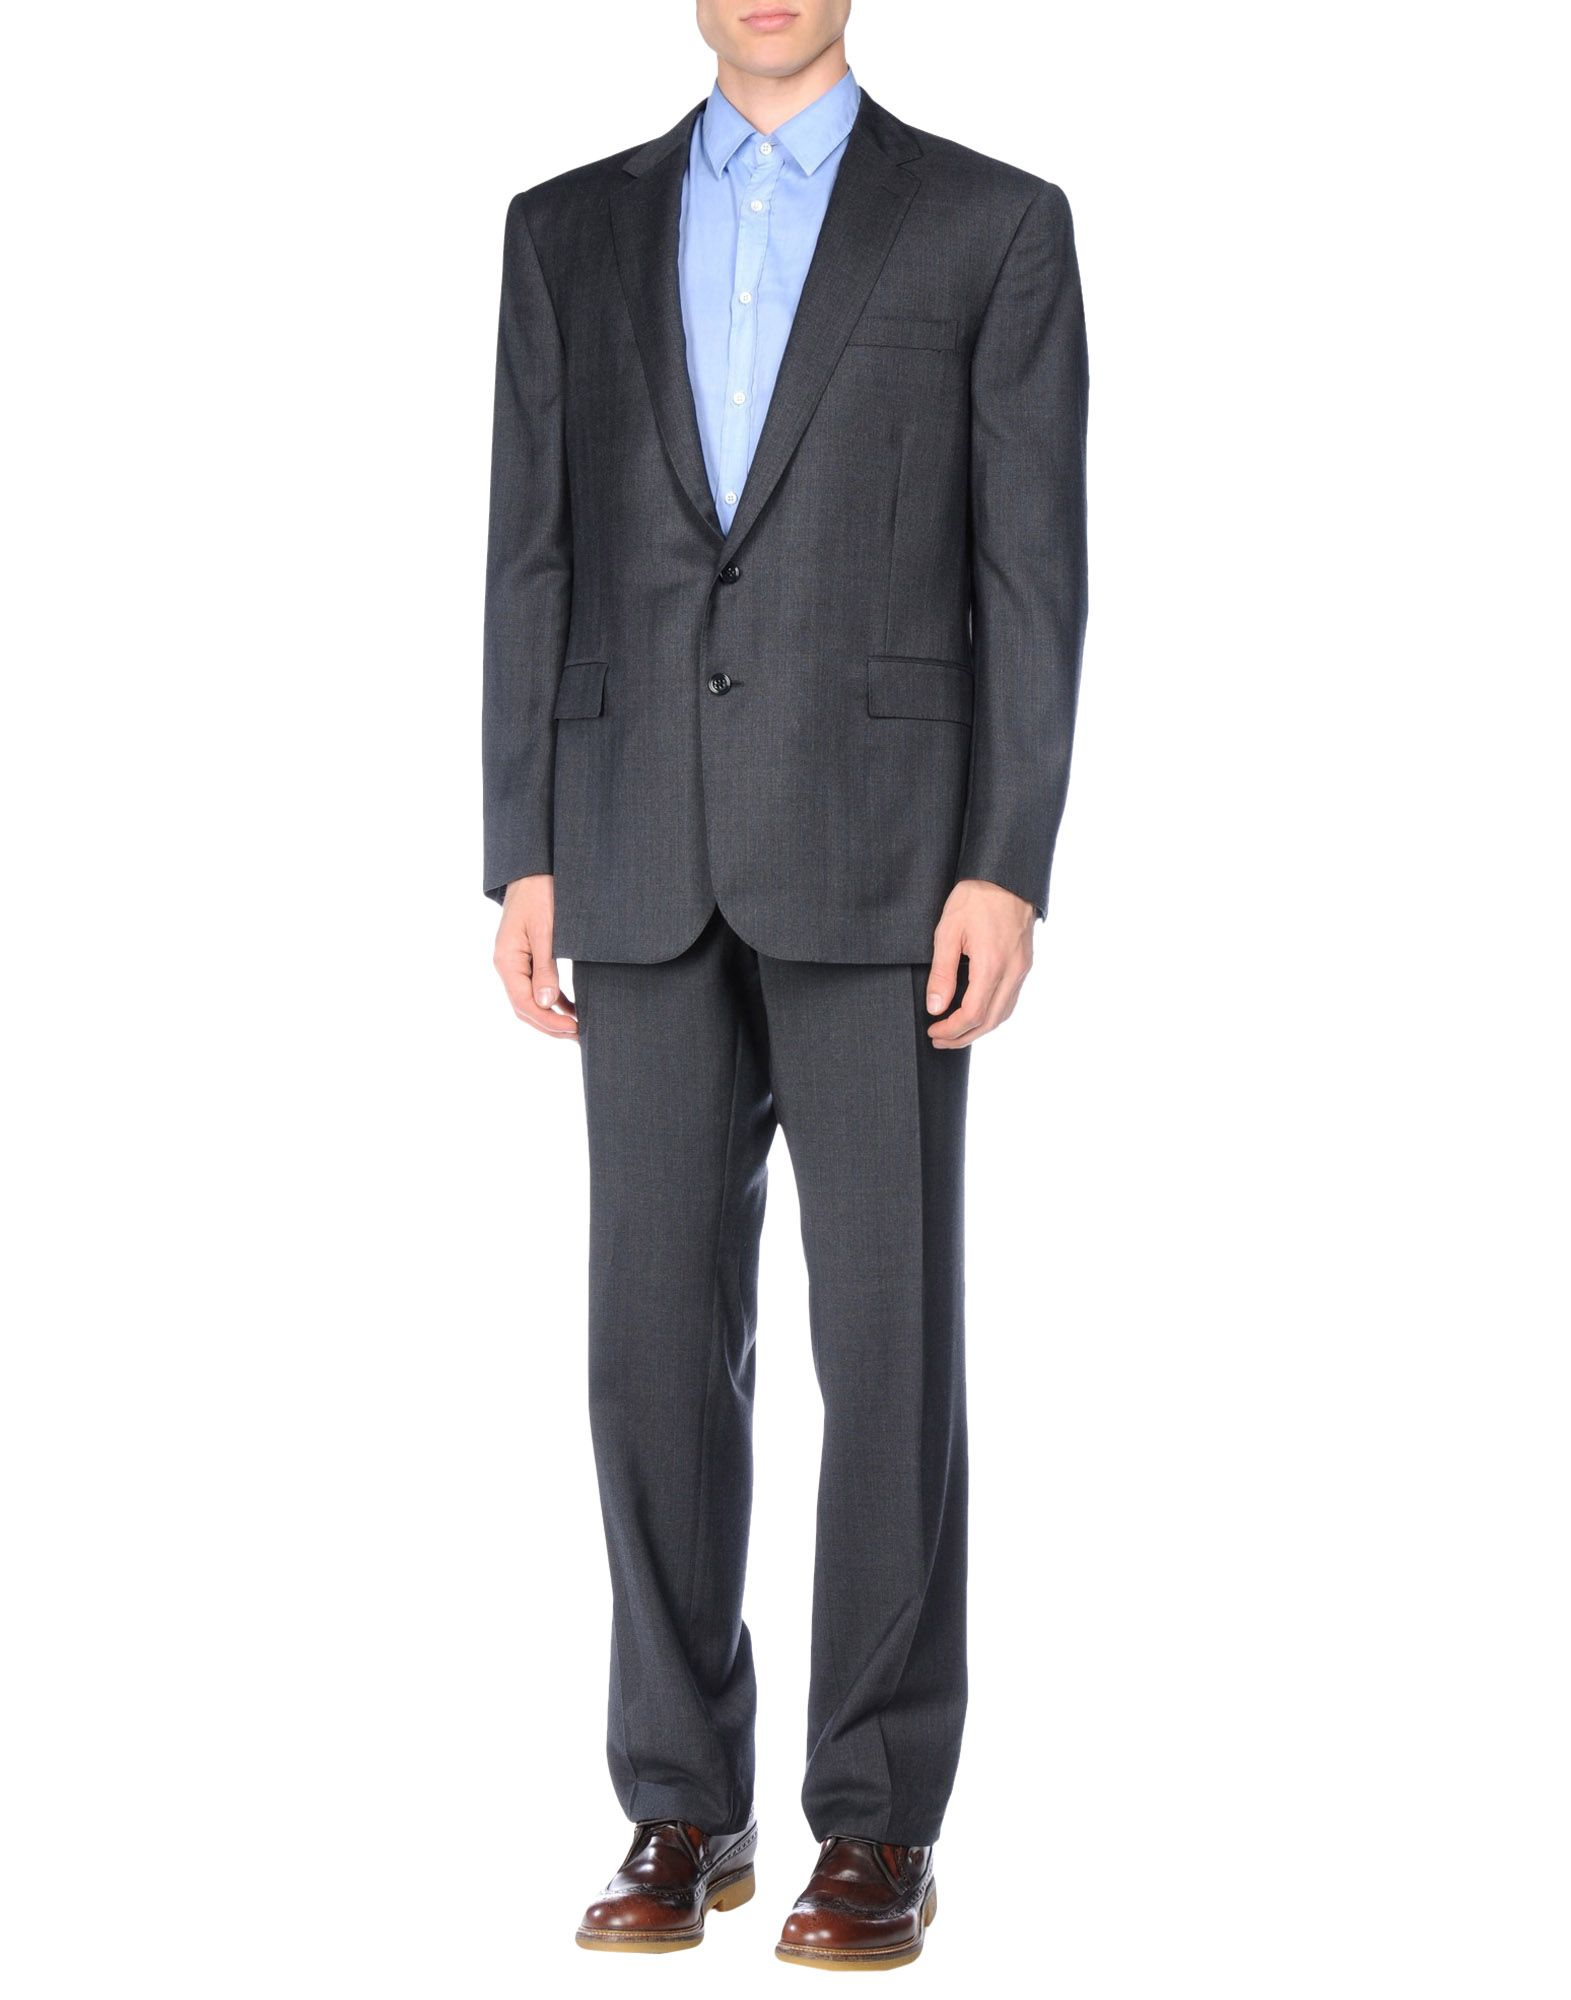 This is an image of Nifty The Black Label Suits